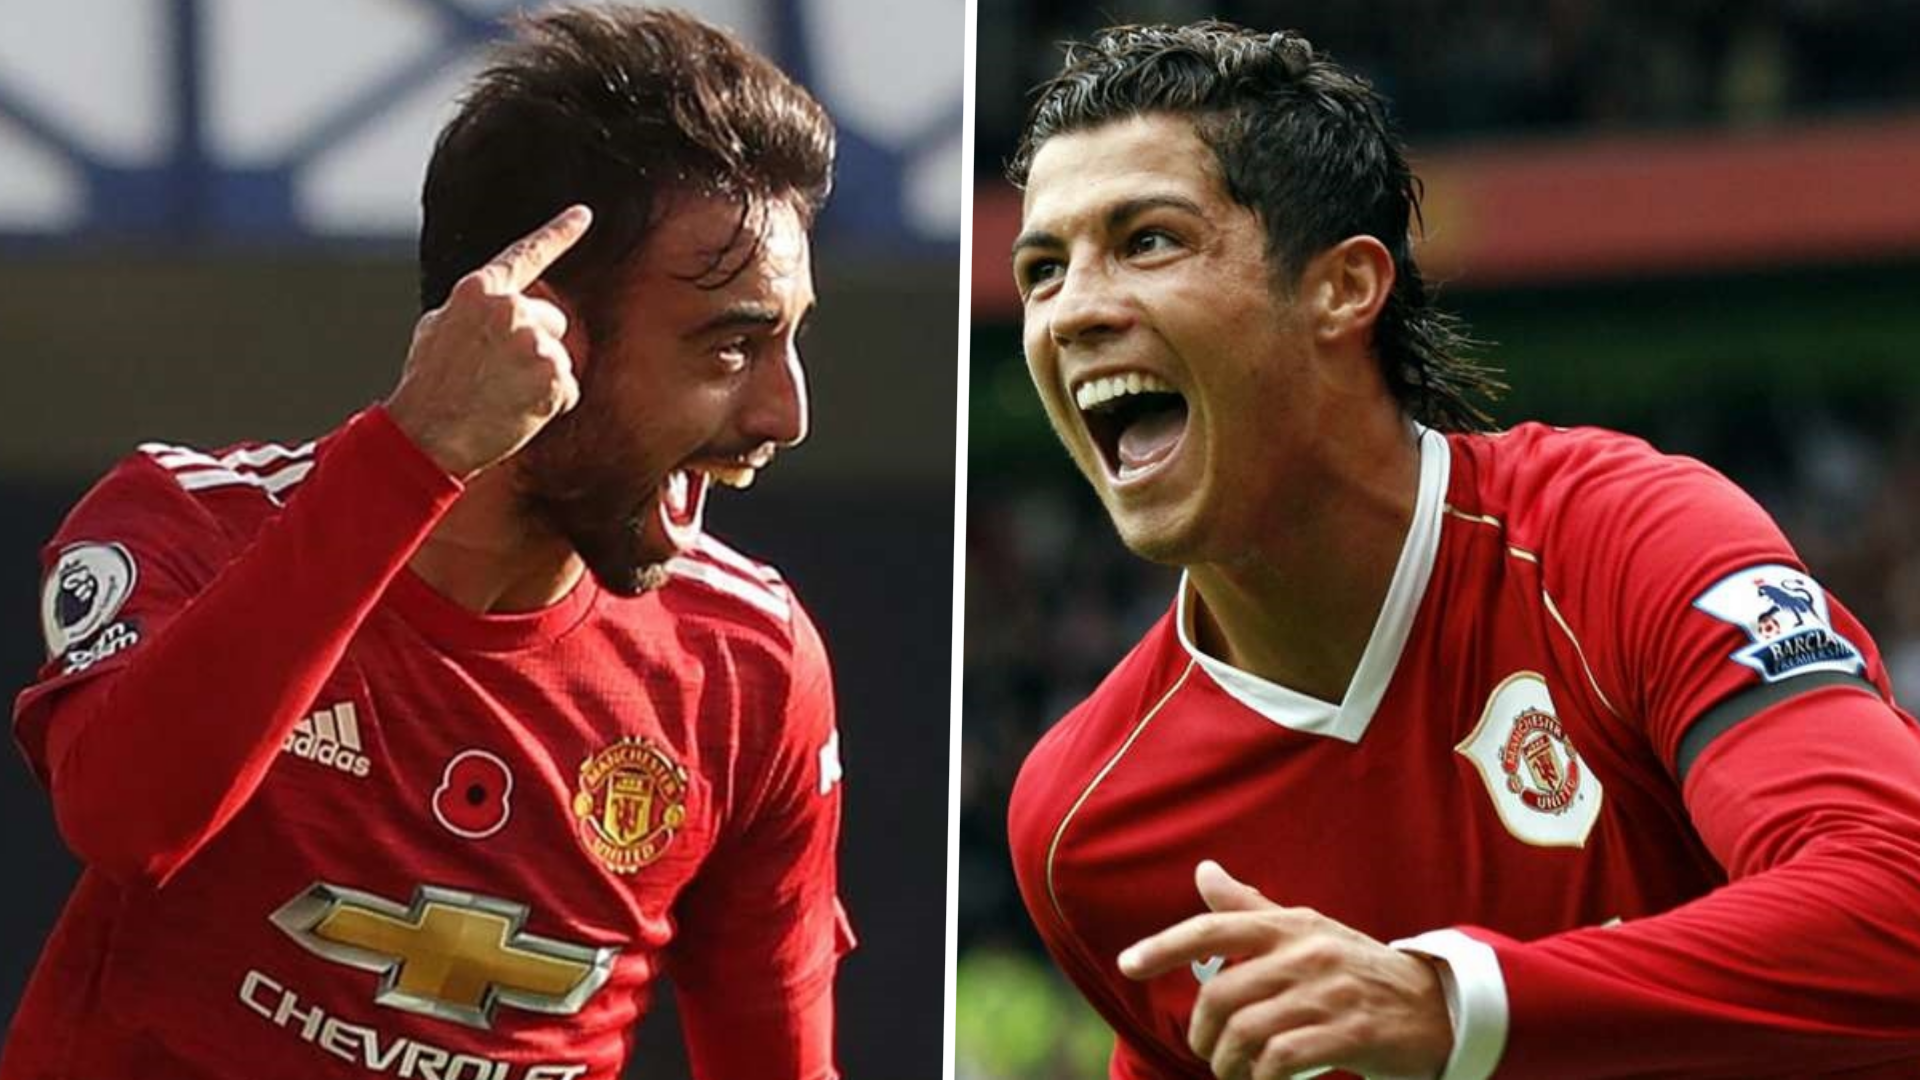 Fernandes would've joined Man Utd without Ronaldo nudge but transfer advice did no harm